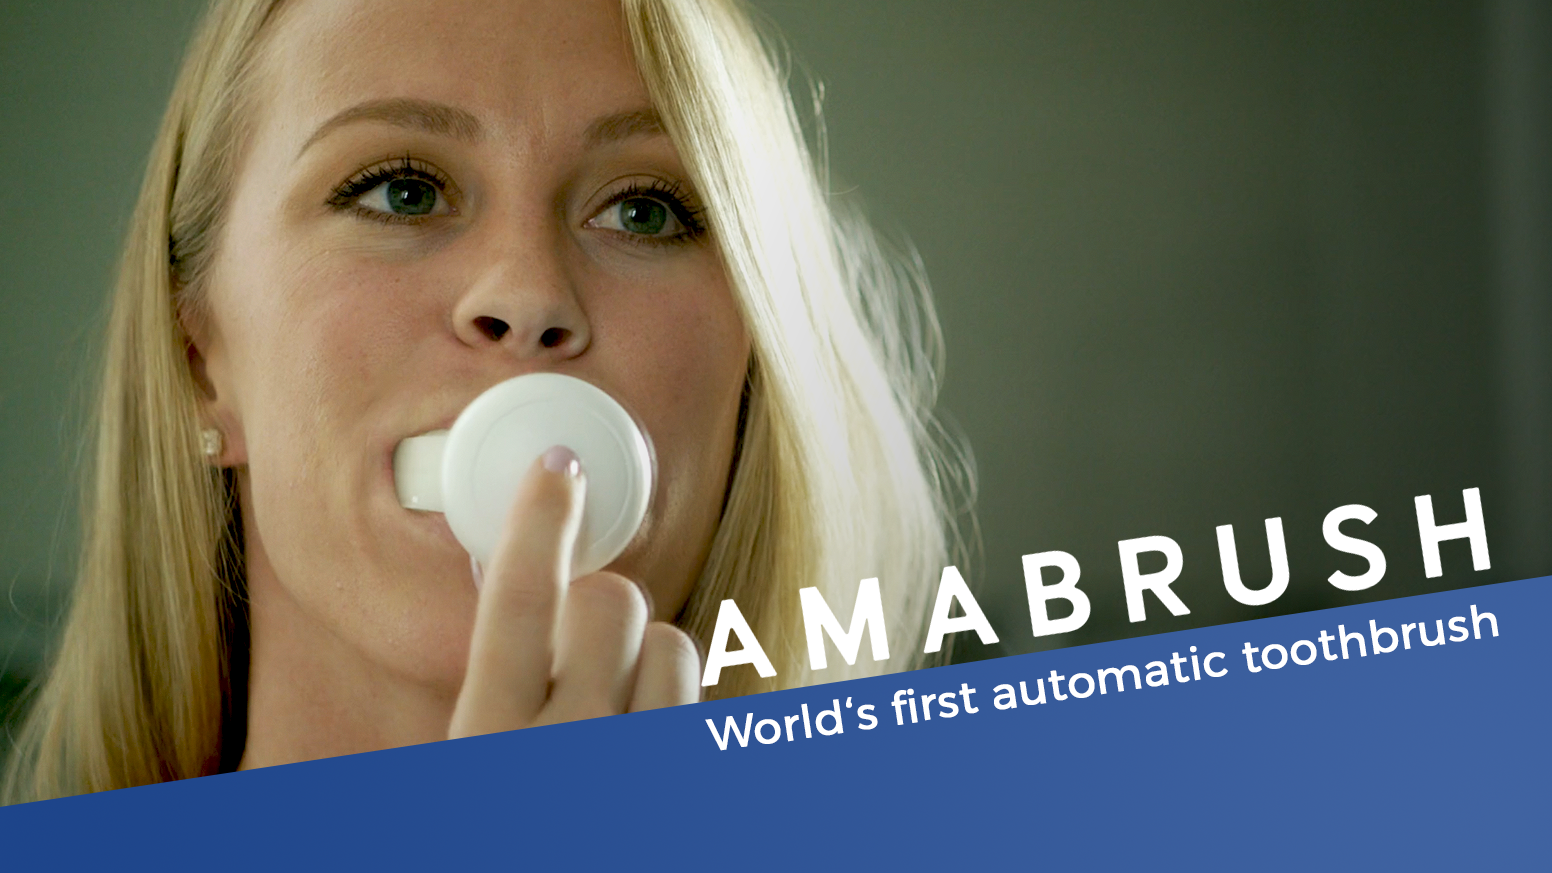 Amabrush - World's First Automatic Toothbrush